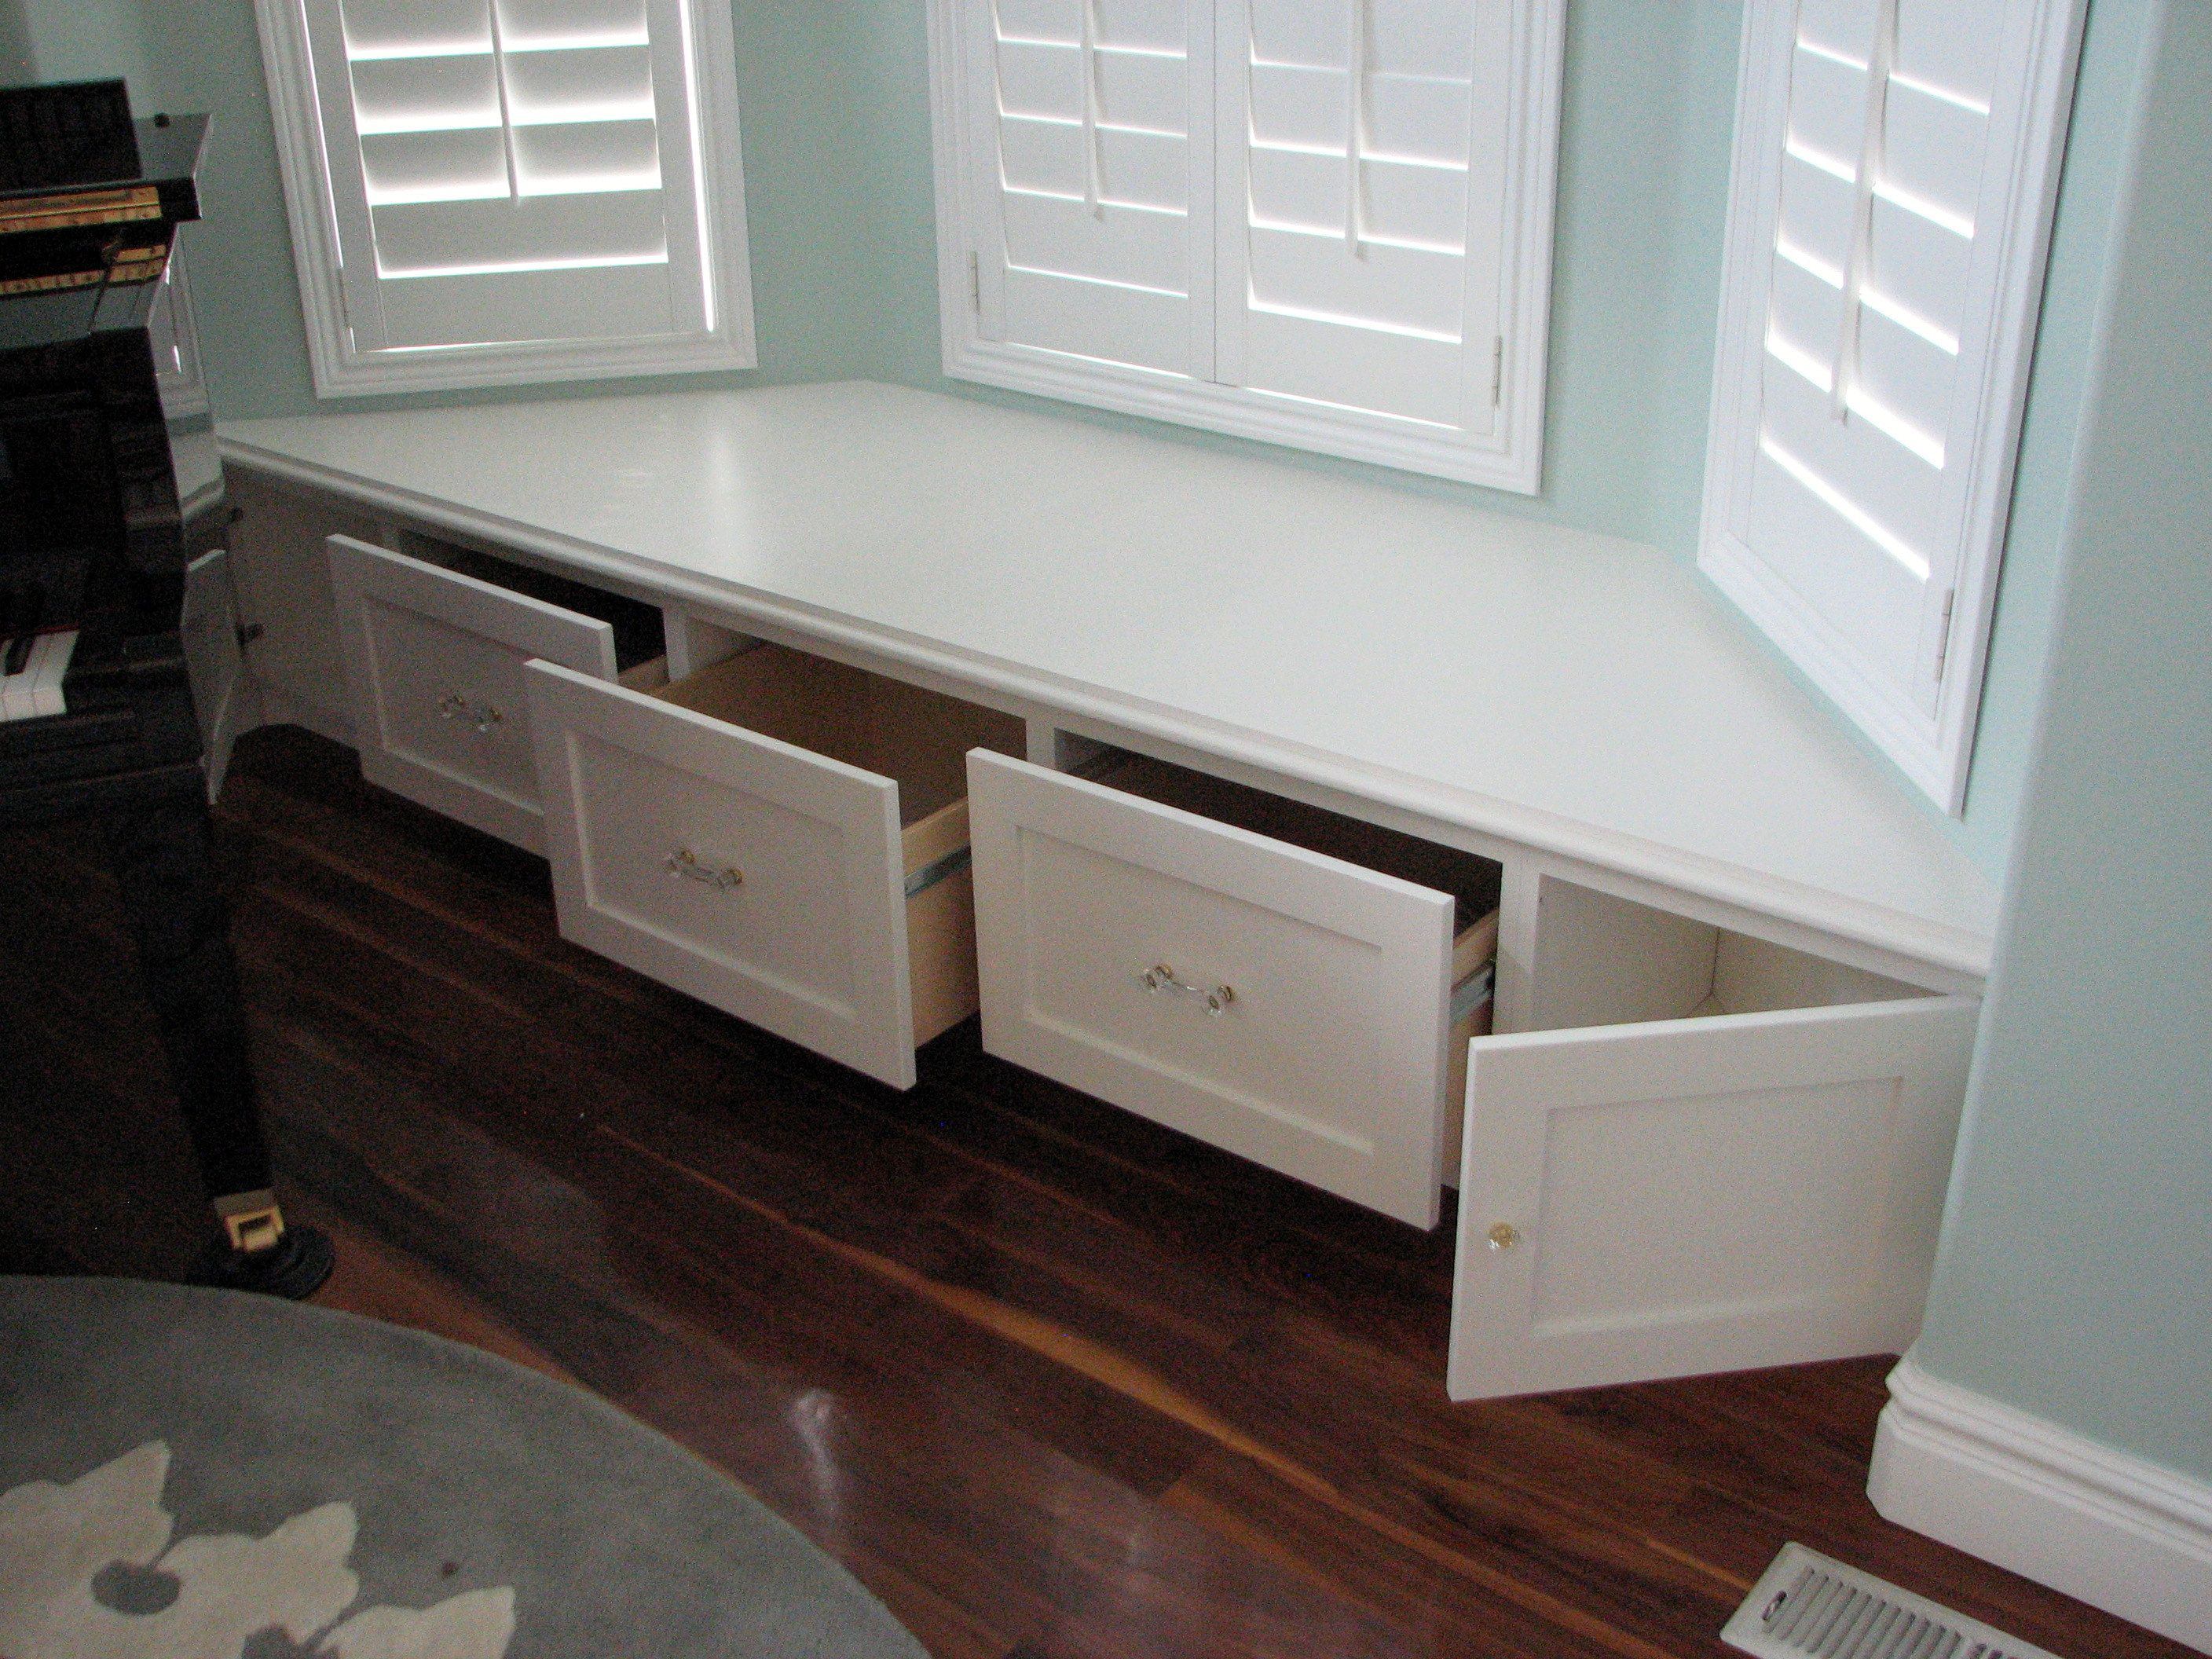 Find This Pin And More On Laundry Room By Happyhoopsvt. Built In Bay Window Seat  Storage ...